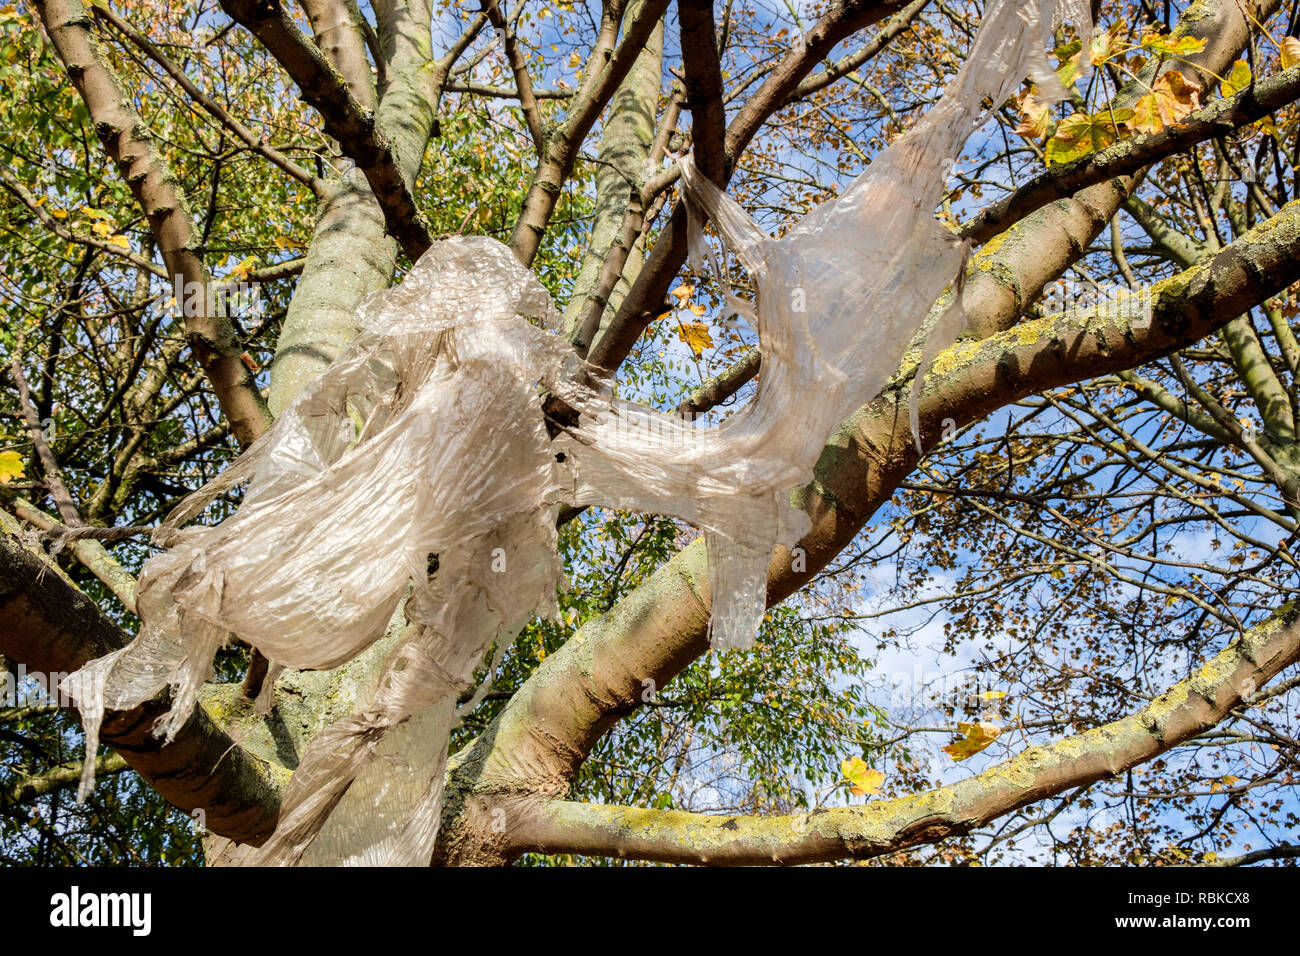 Plastic waste. Plastic sheeting caught on branches in a tree, Nottingham, England, UK - Stock Image